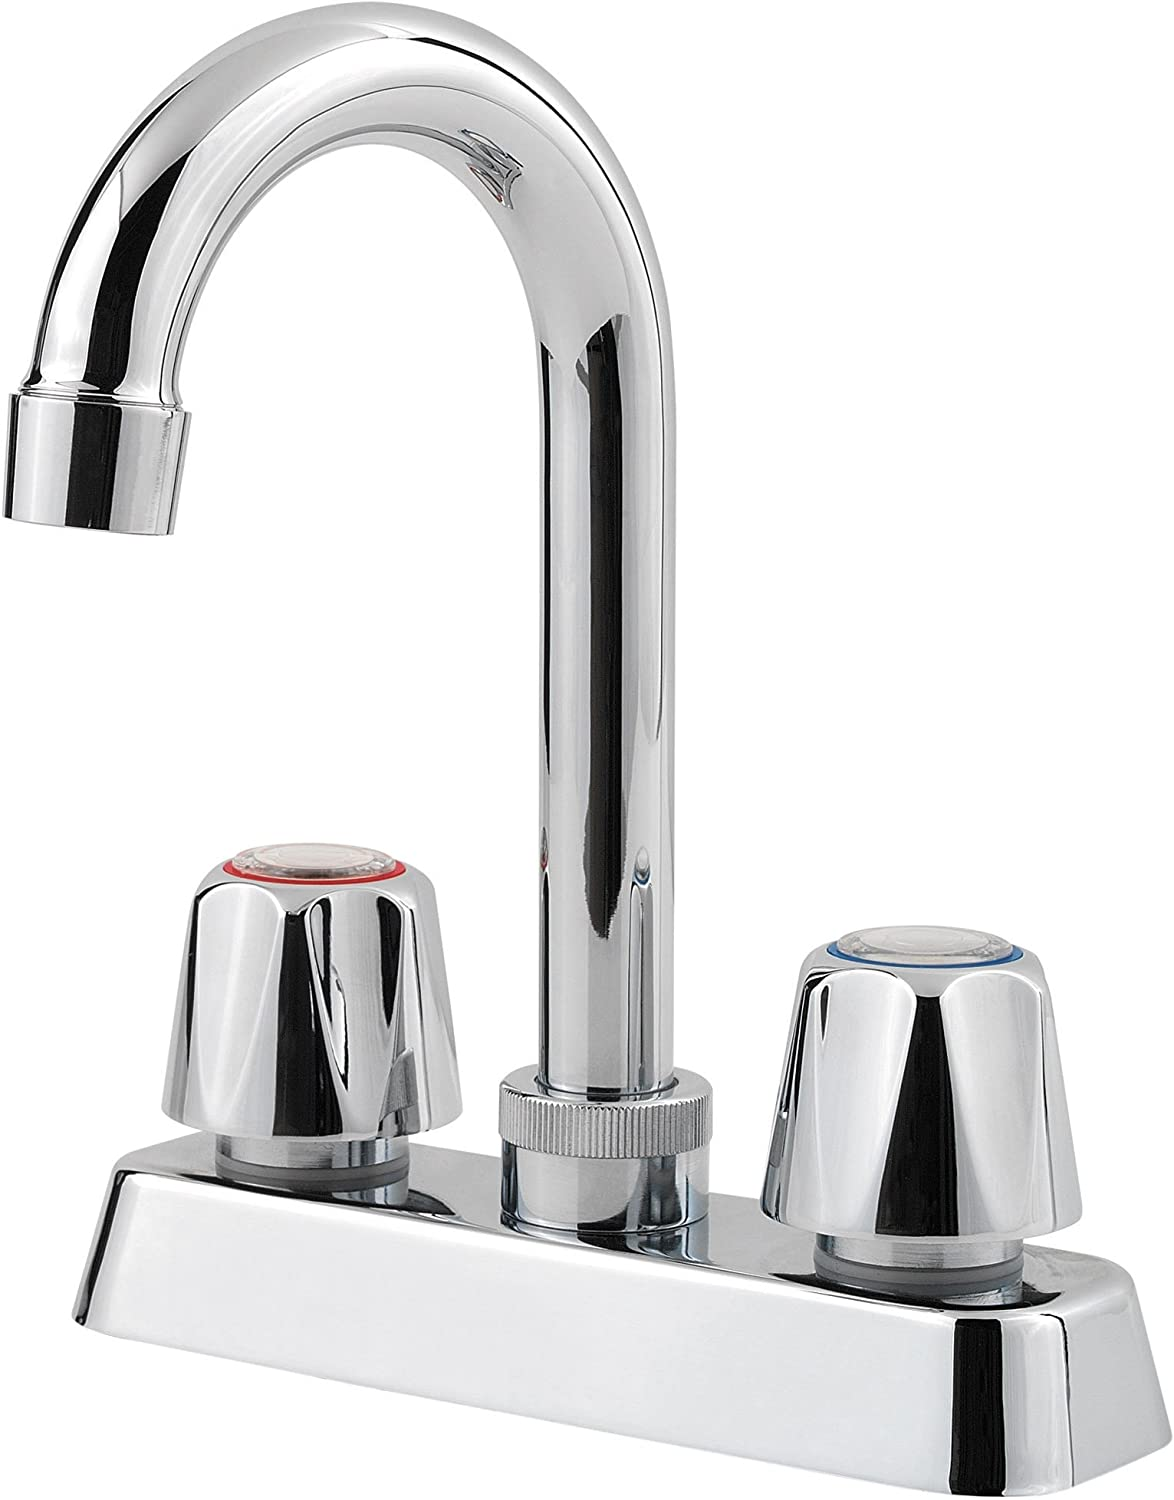 Pfister Pfirst Series 2-Handle Bar Prep Kitchen Faucet, Polished Chrome